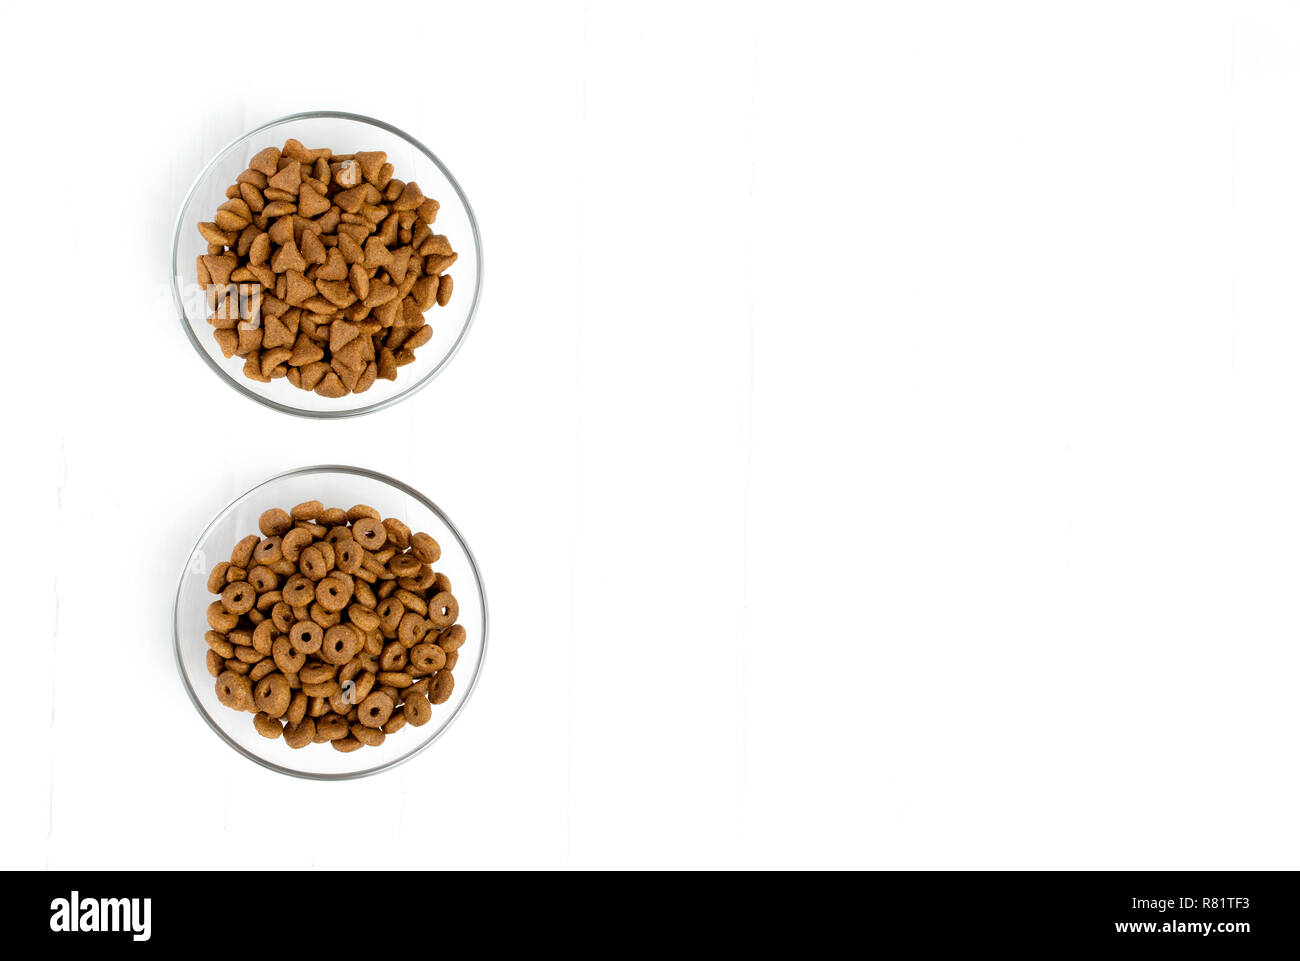 Dry cat food poured into a glass bowl on a white background - Stock Image